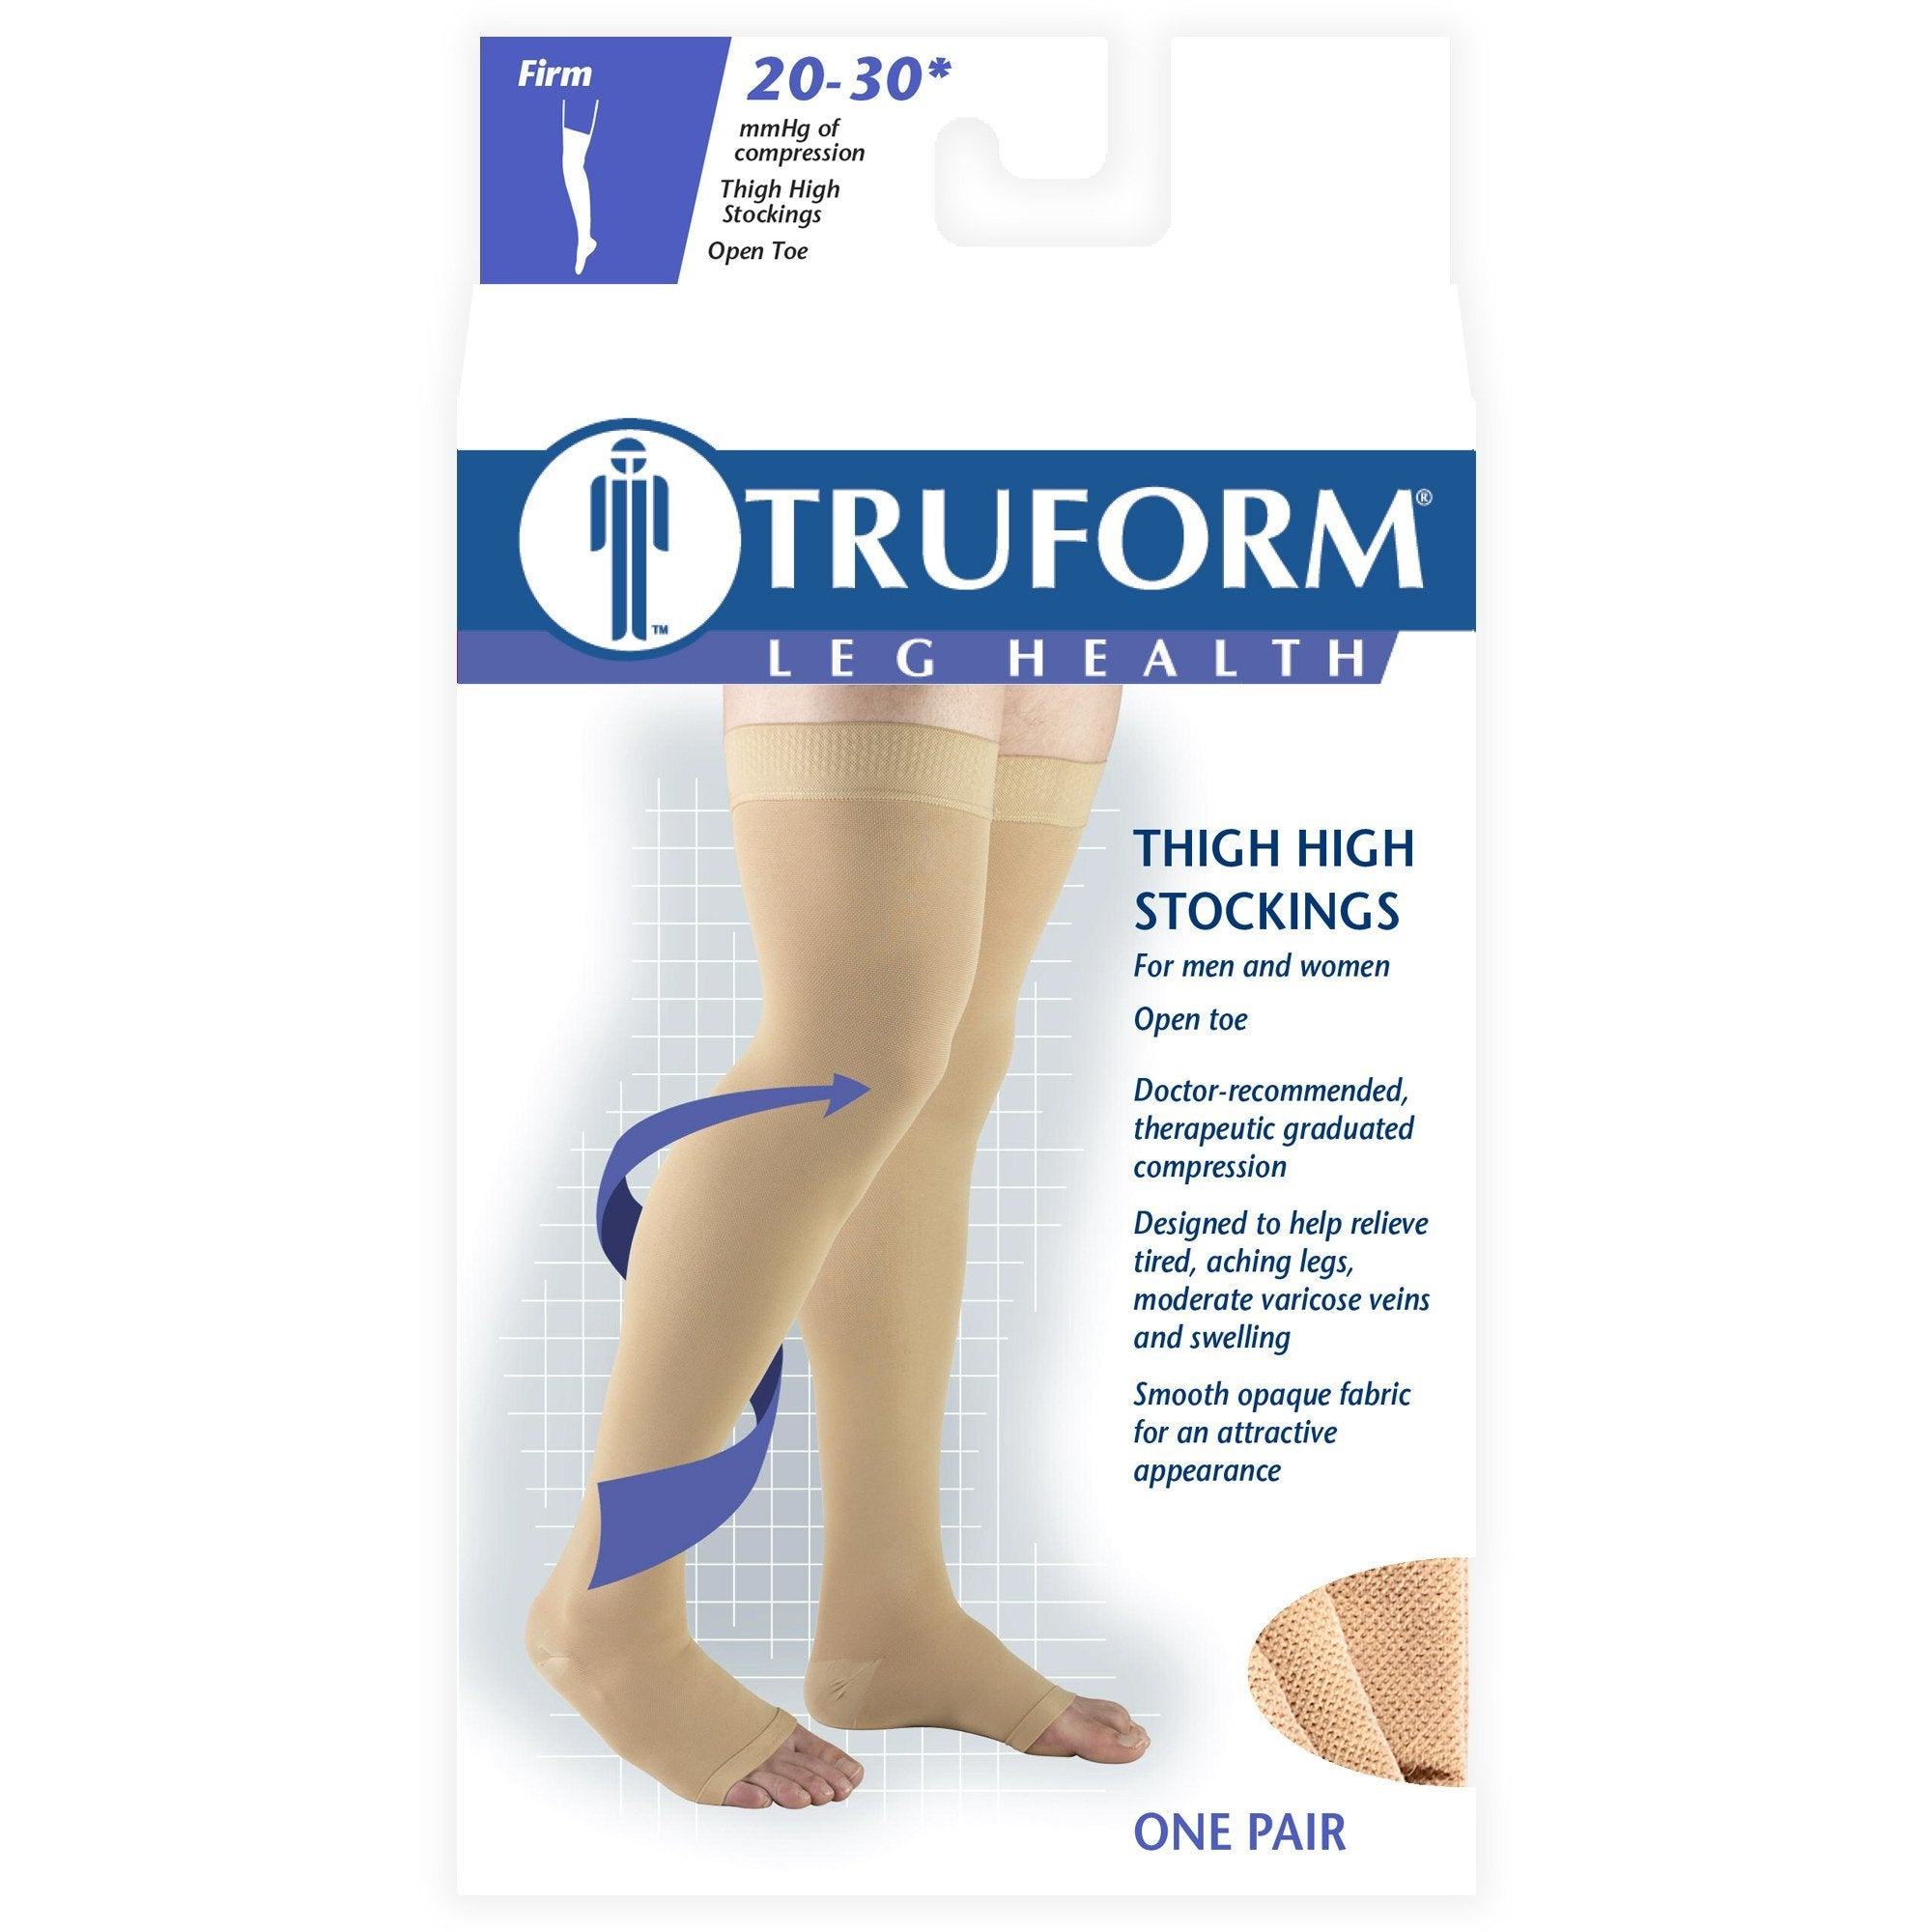 f2afe45a16f Truform 20-30 mmHg OPEN-TOE Thigh High W  Silicone Dot – HEALTHYLEGS.com